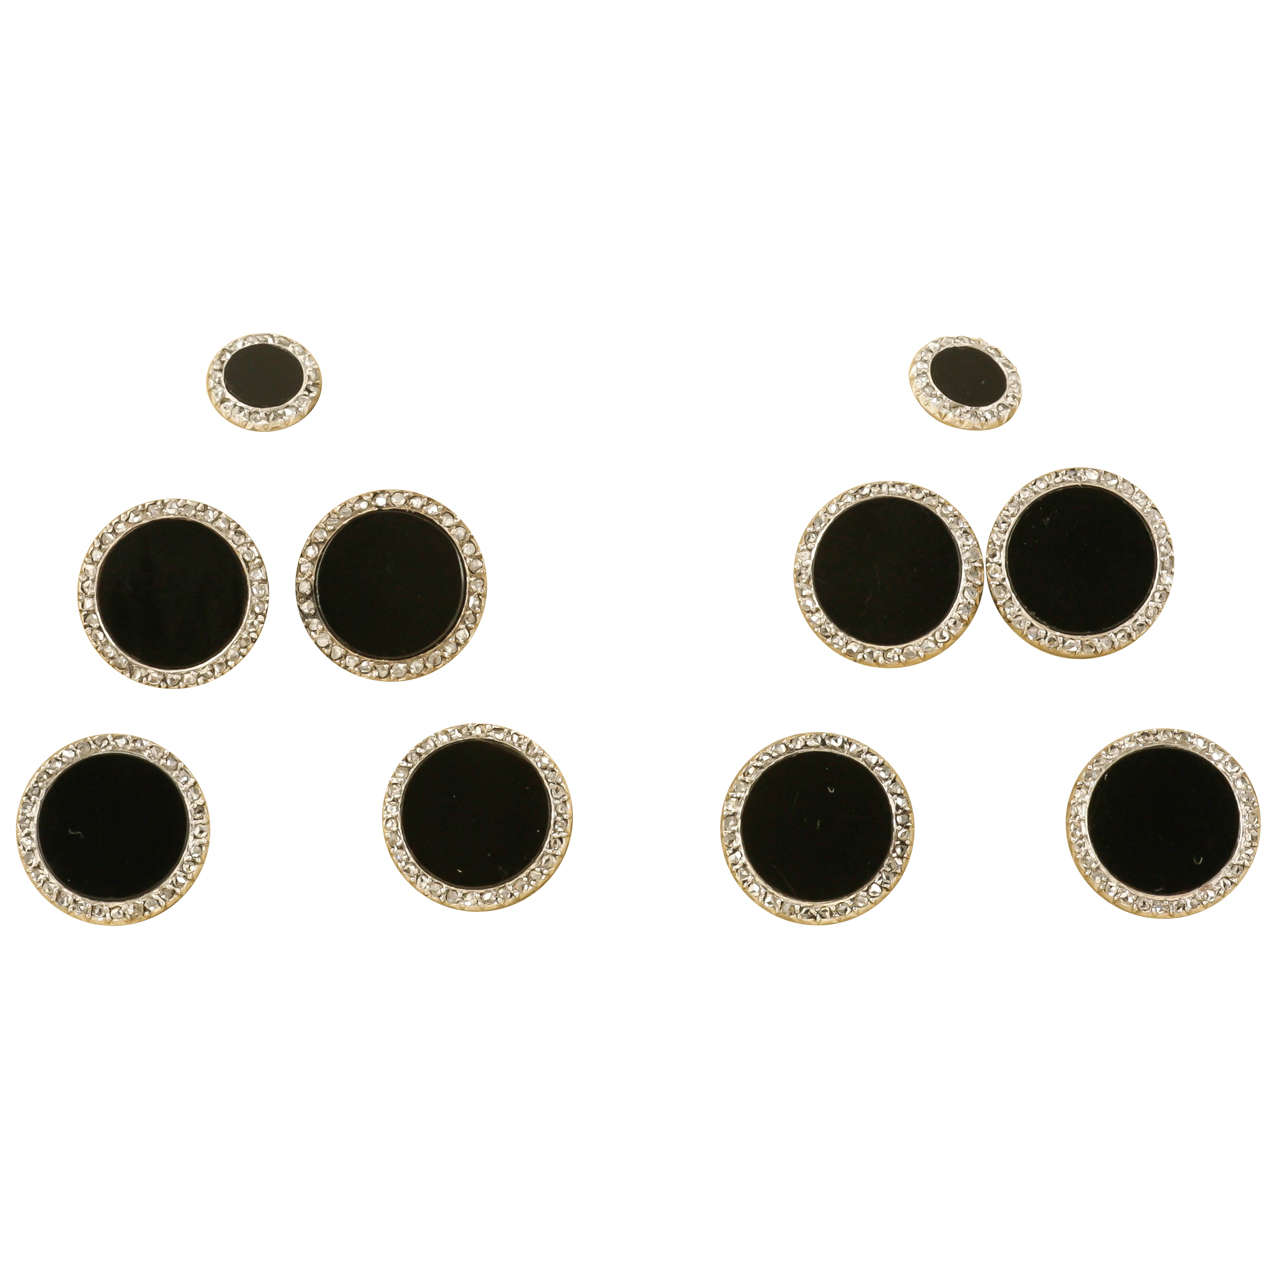 earrings steel michael a stainless jewellers stud image button plated grahams kors rose gold